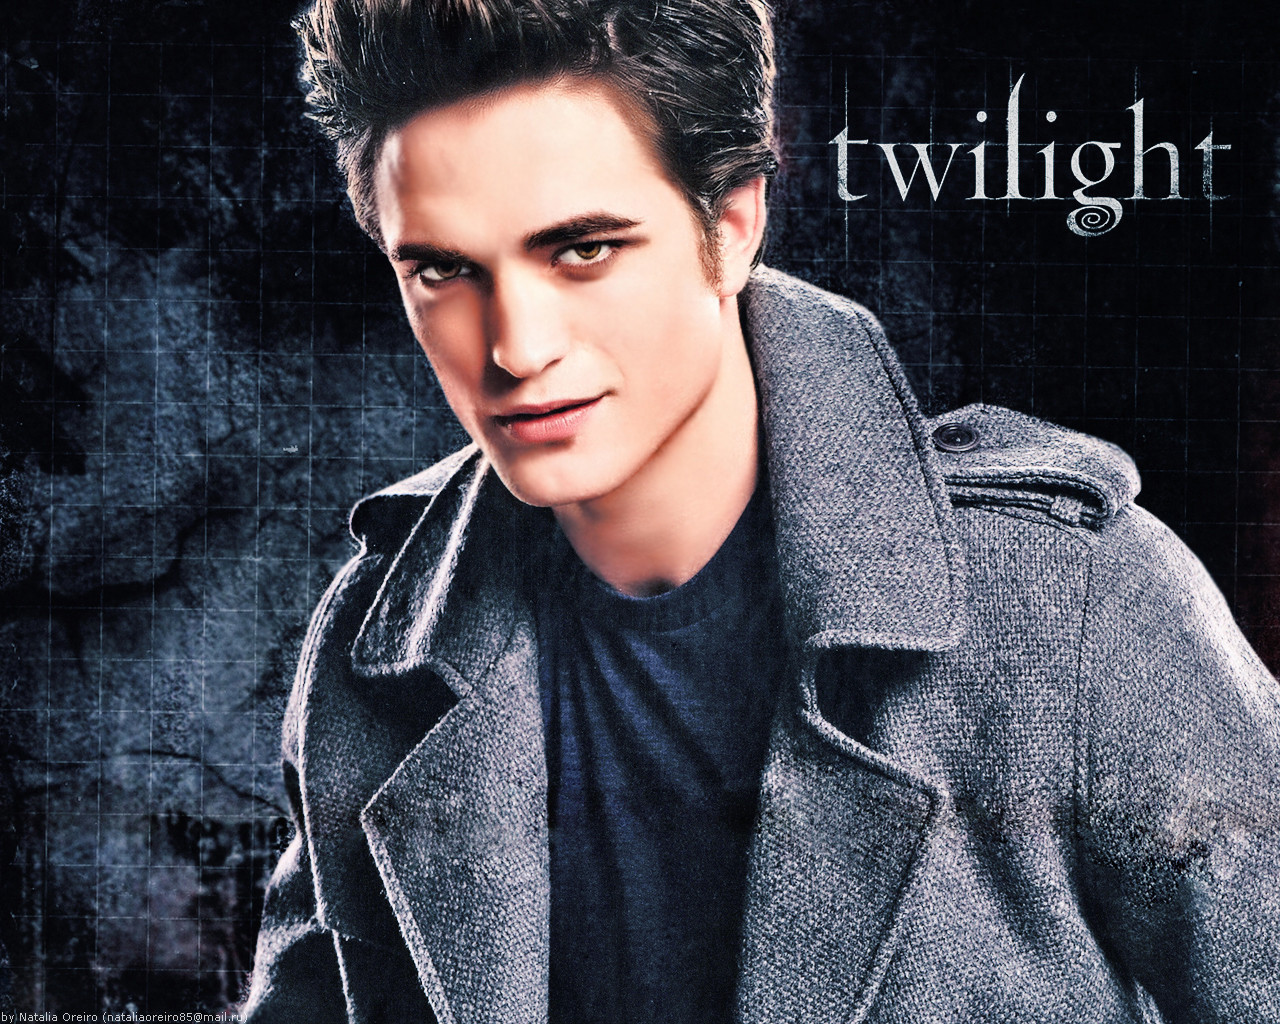 Edward Cullen - Twilight Series Wallpaper (3897195) - Fanpop fanclubs